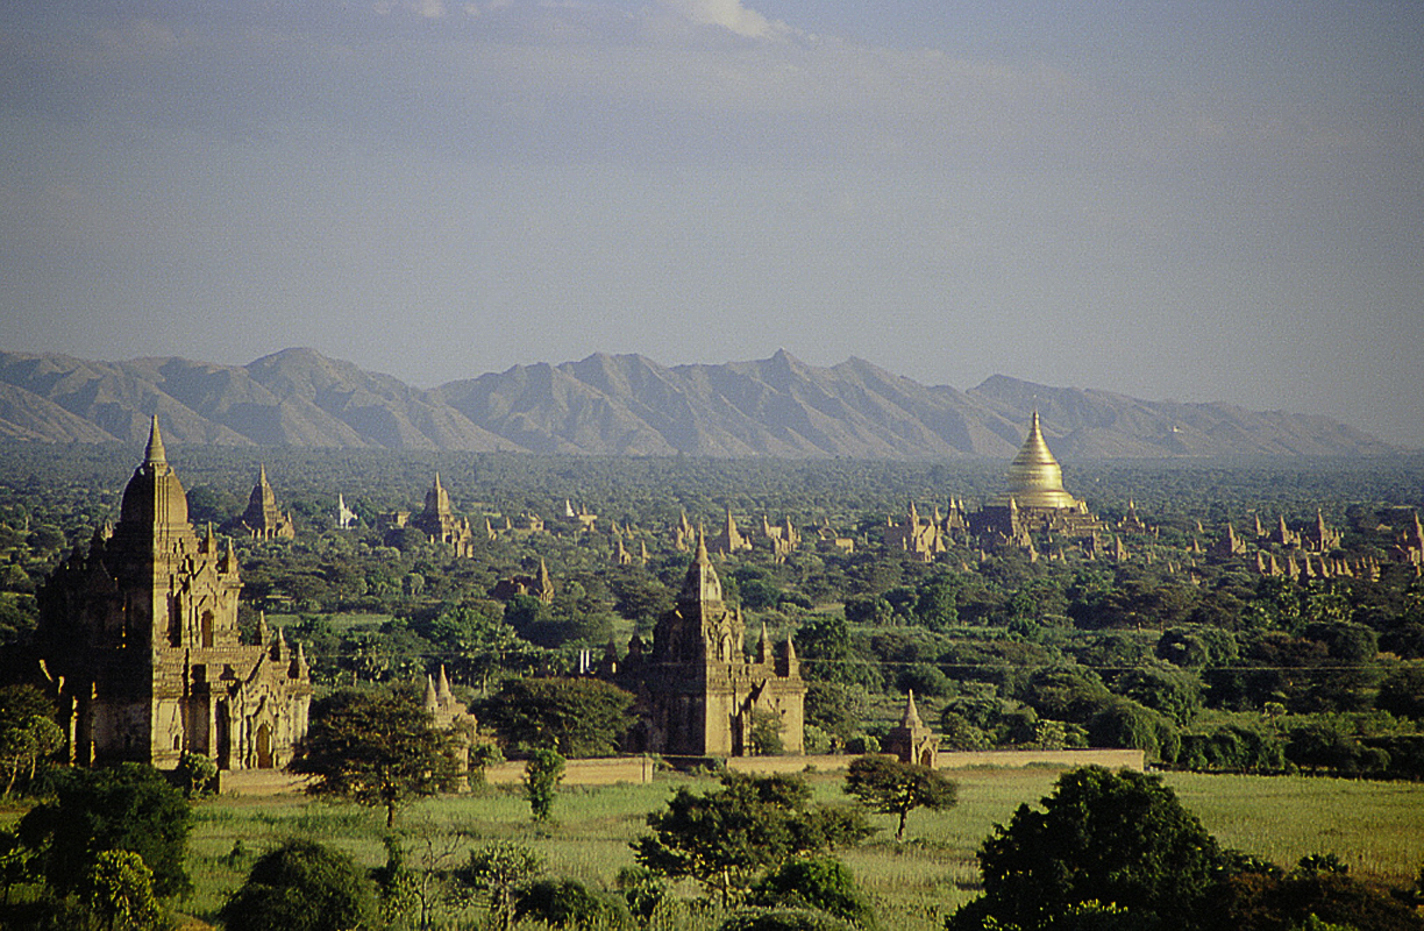 http://upload.wikimedia.org/wikipedia/commons/8/89/Bagan,_Burma.jpg